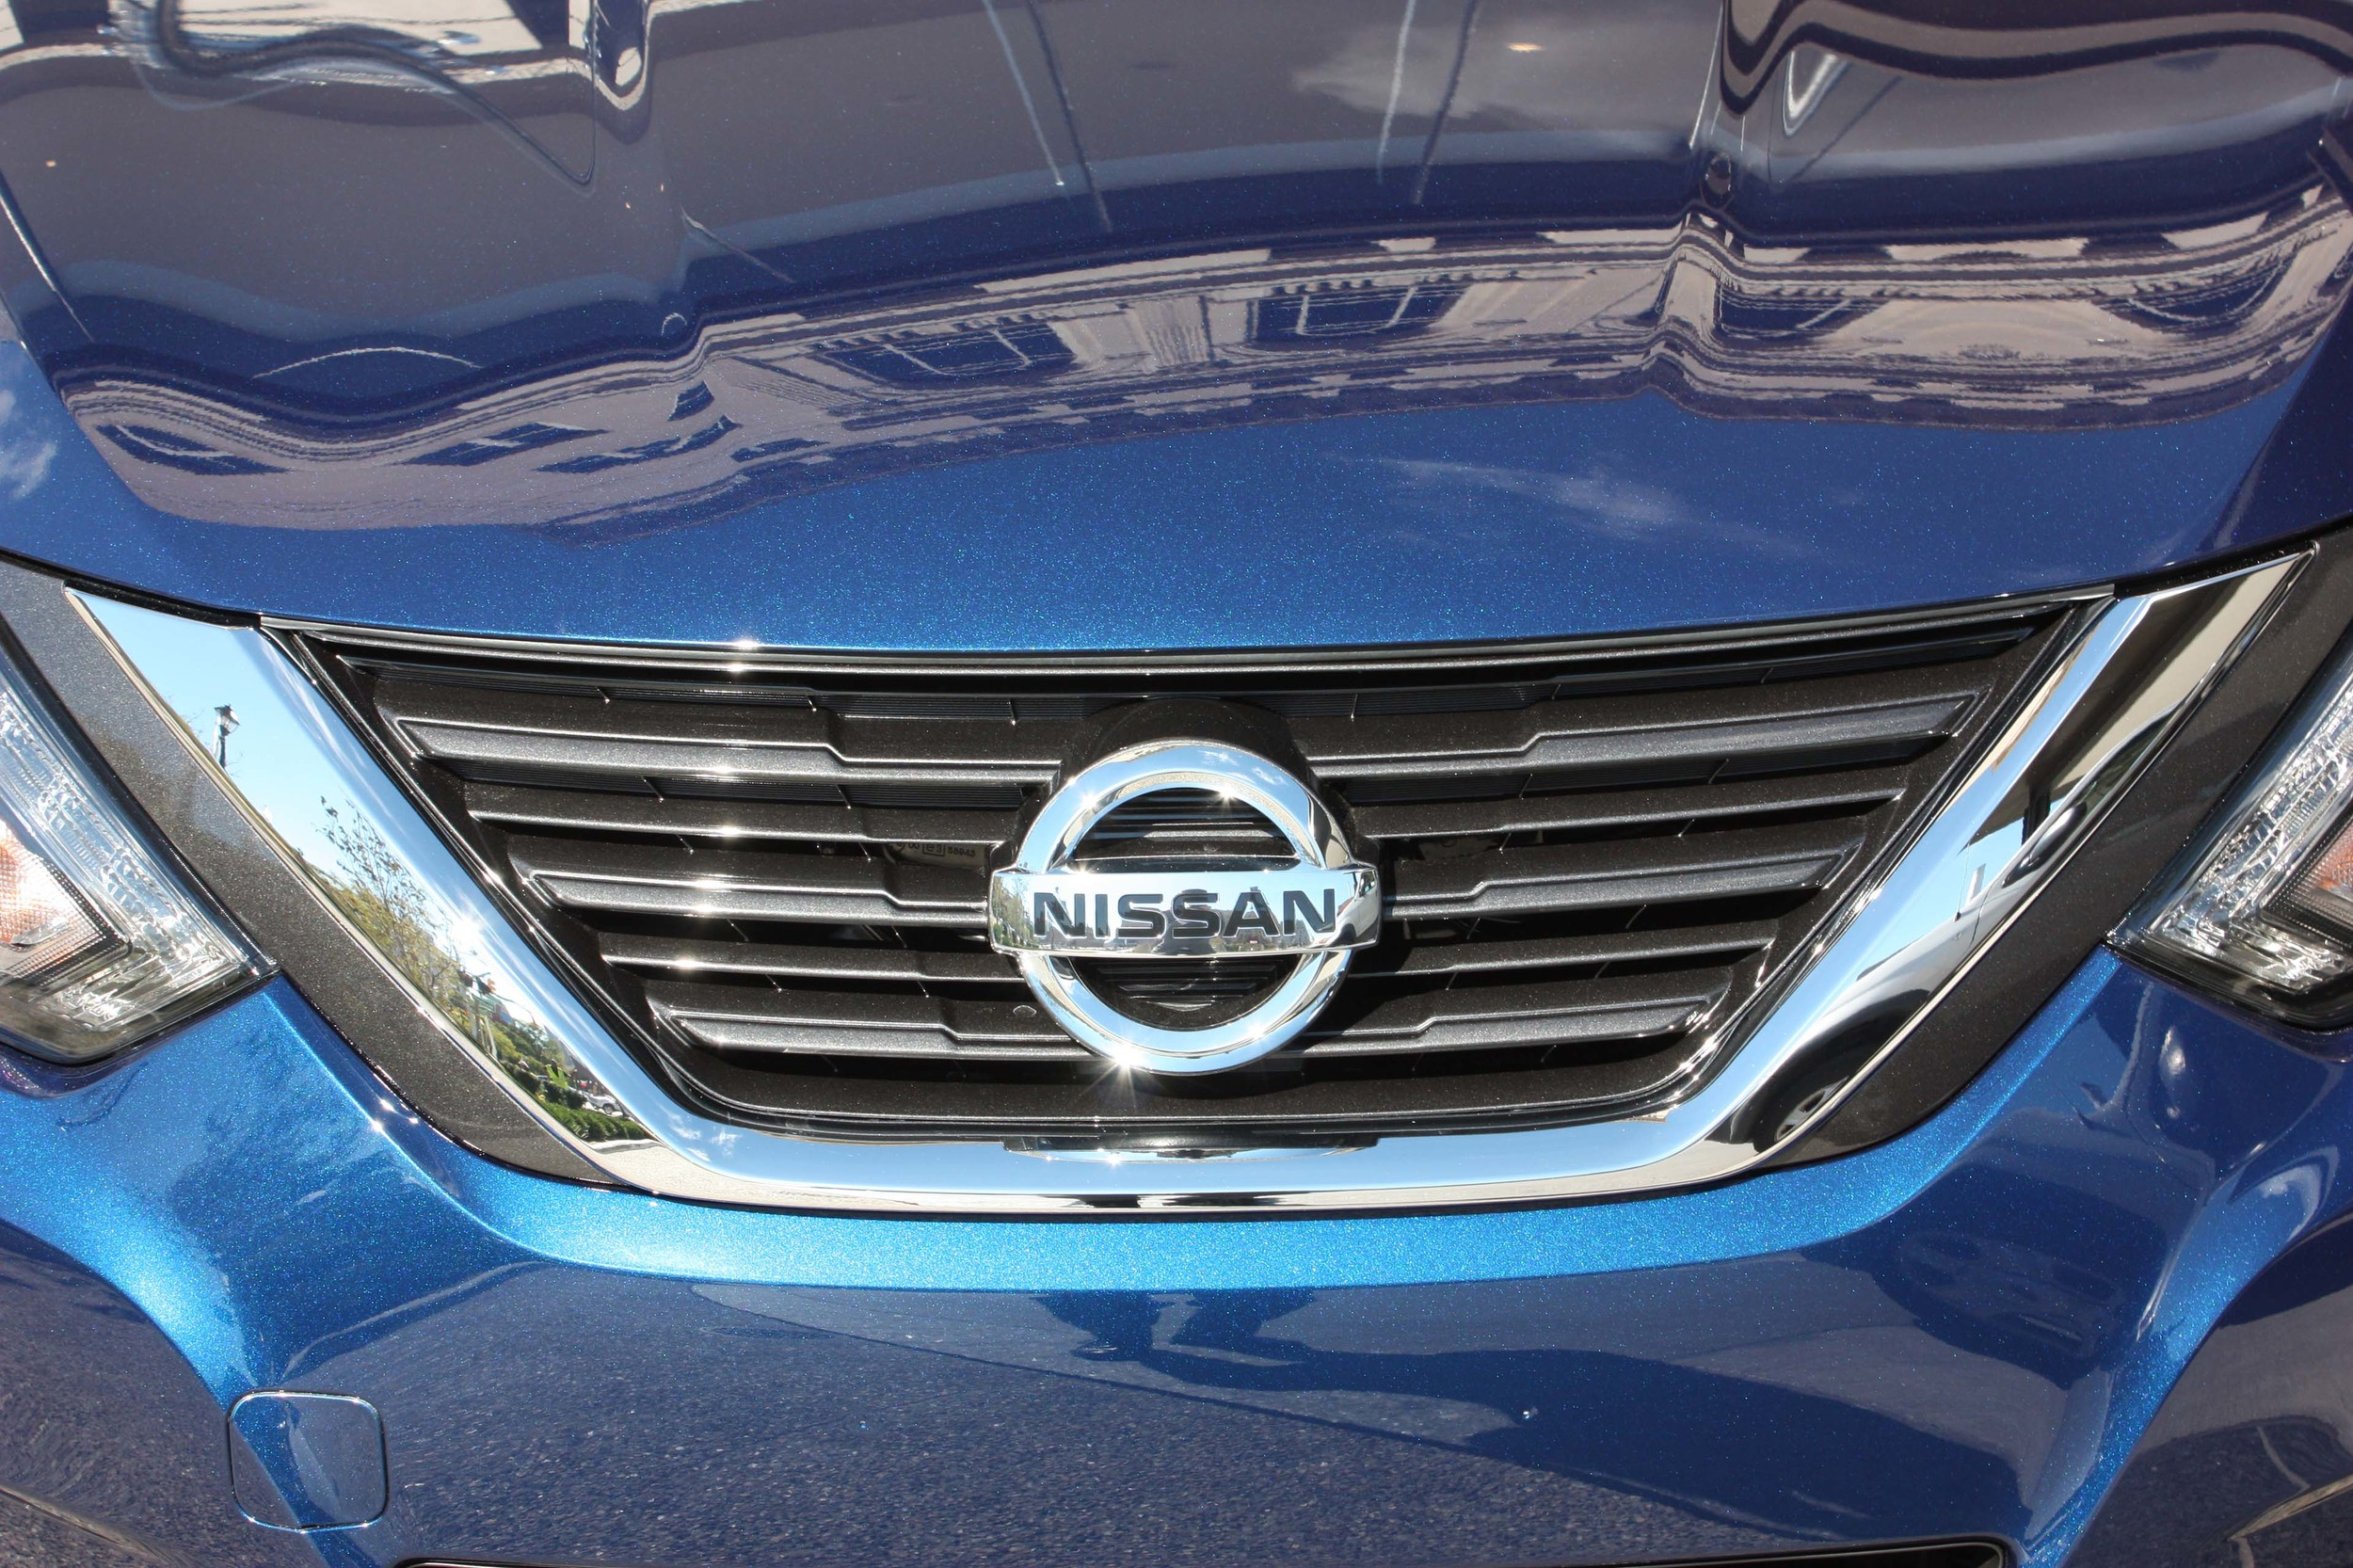 2016 Nissan Altima Exterior Grille